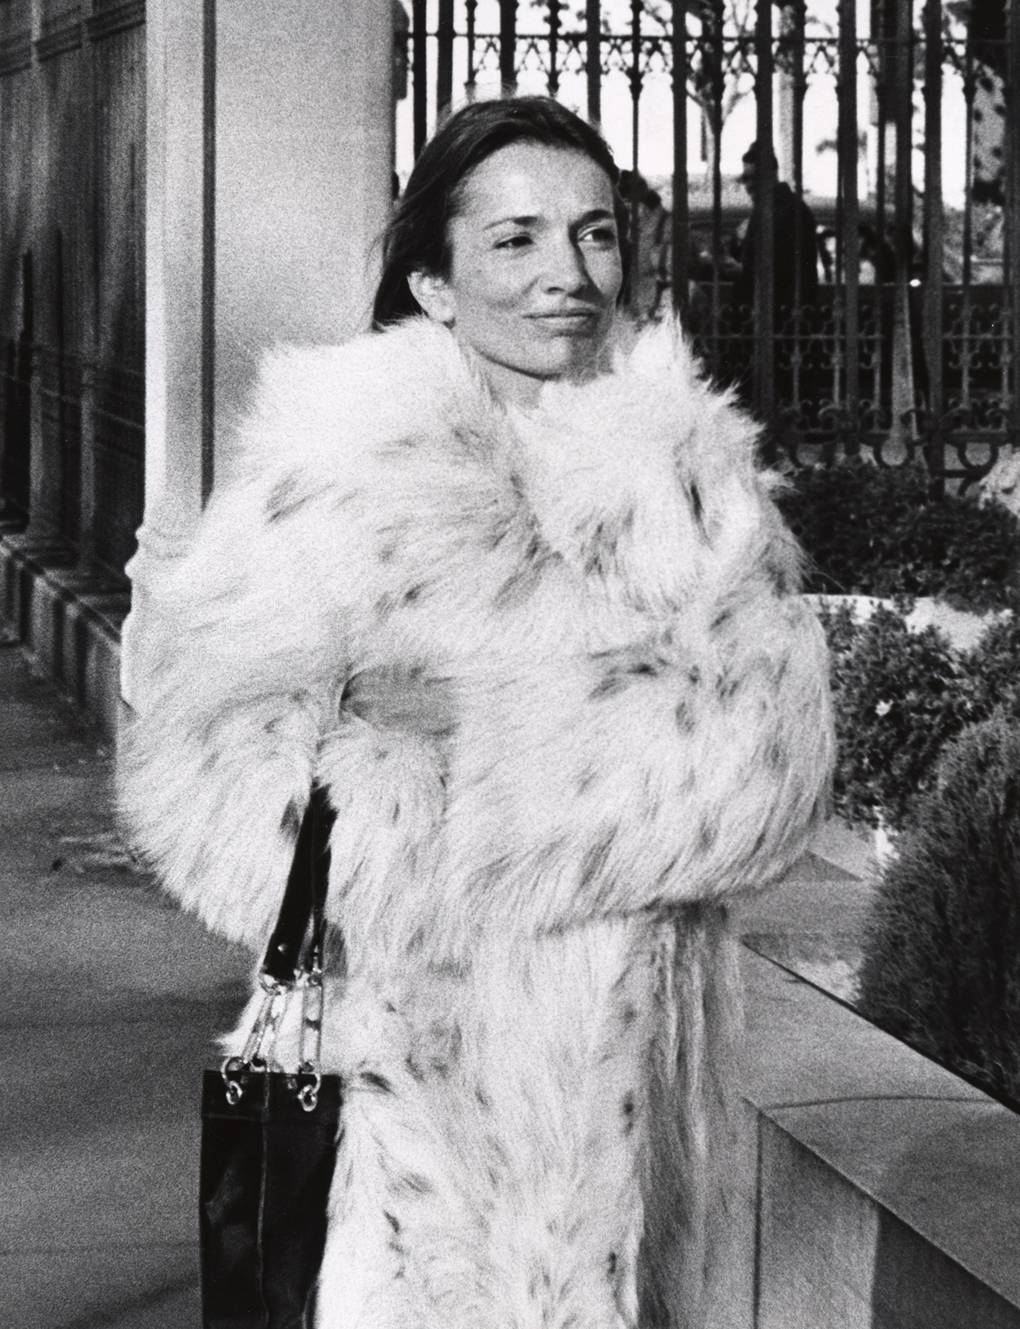 Lee Radziwill's personal collection of fine art, jewellery and books to be auctioned